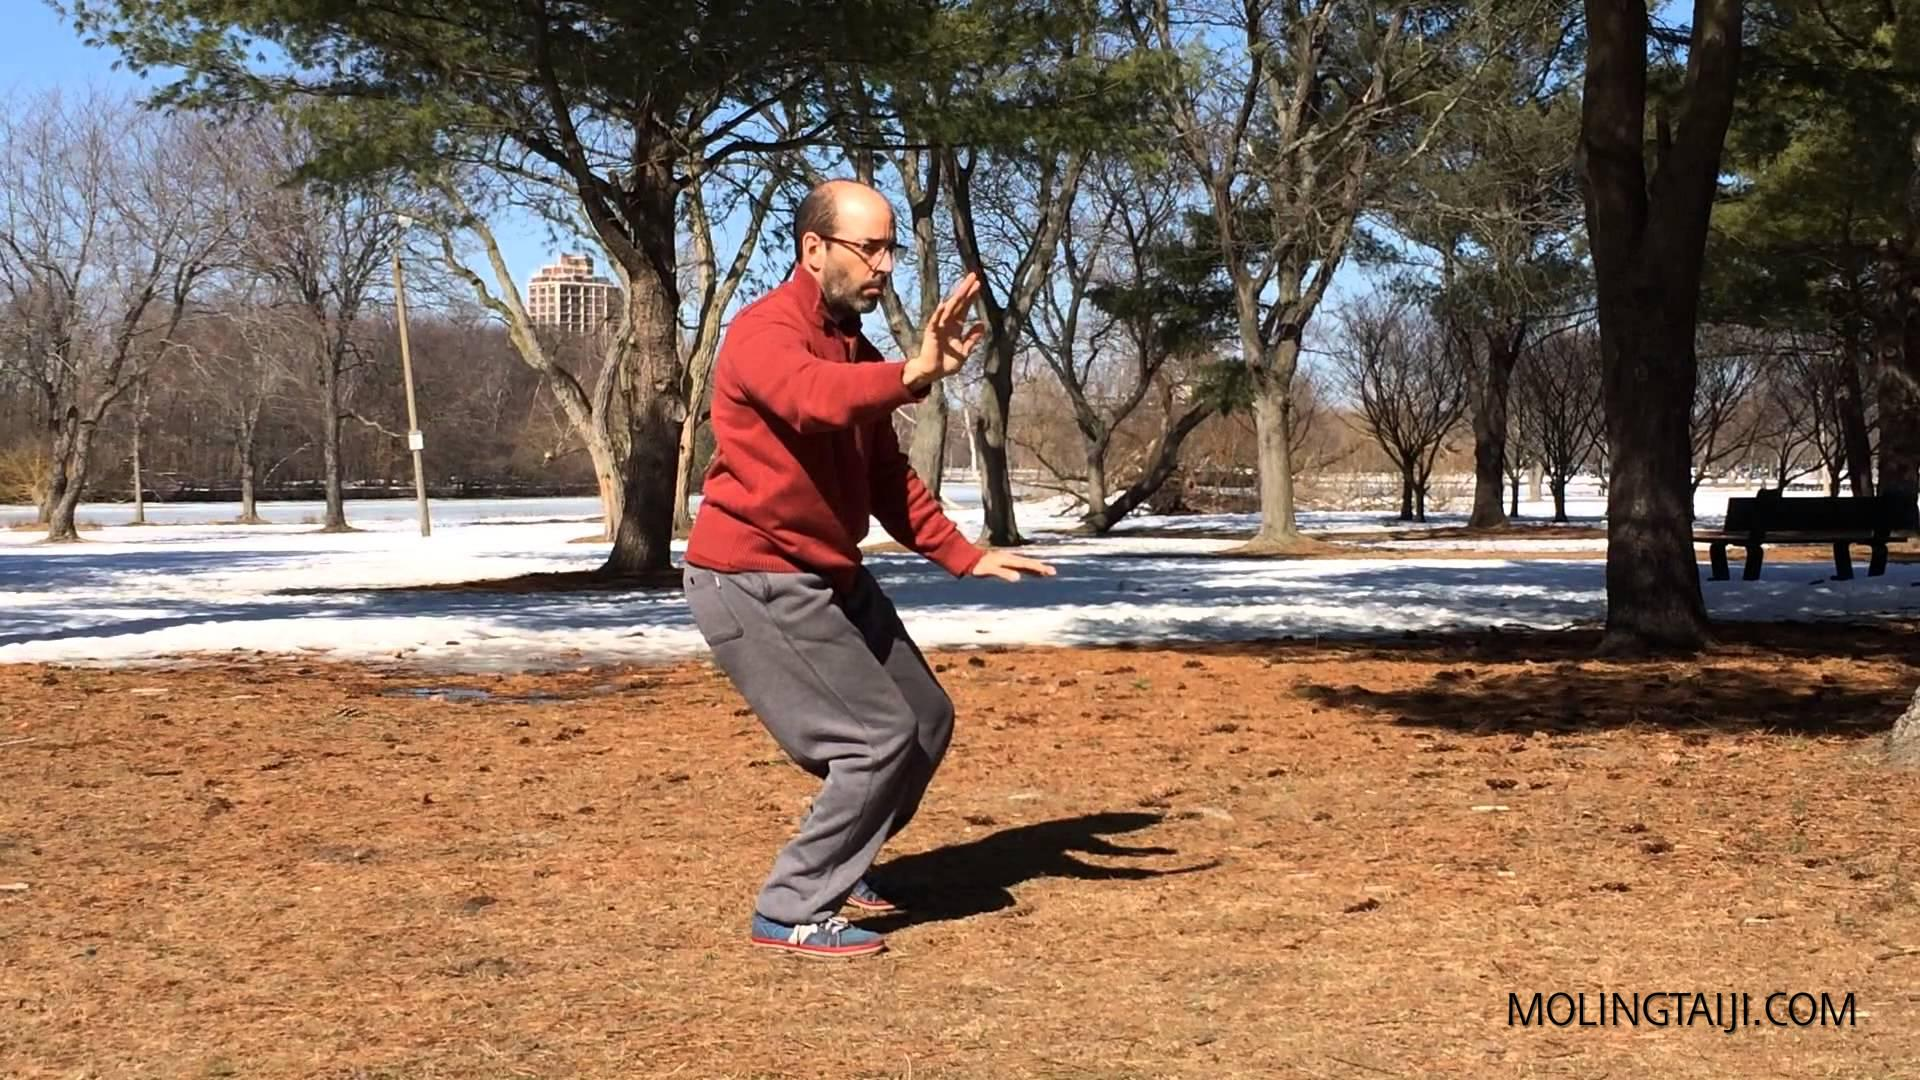 Two slightly different feelings of Chen Taijiquan Yilu as the seasons changed